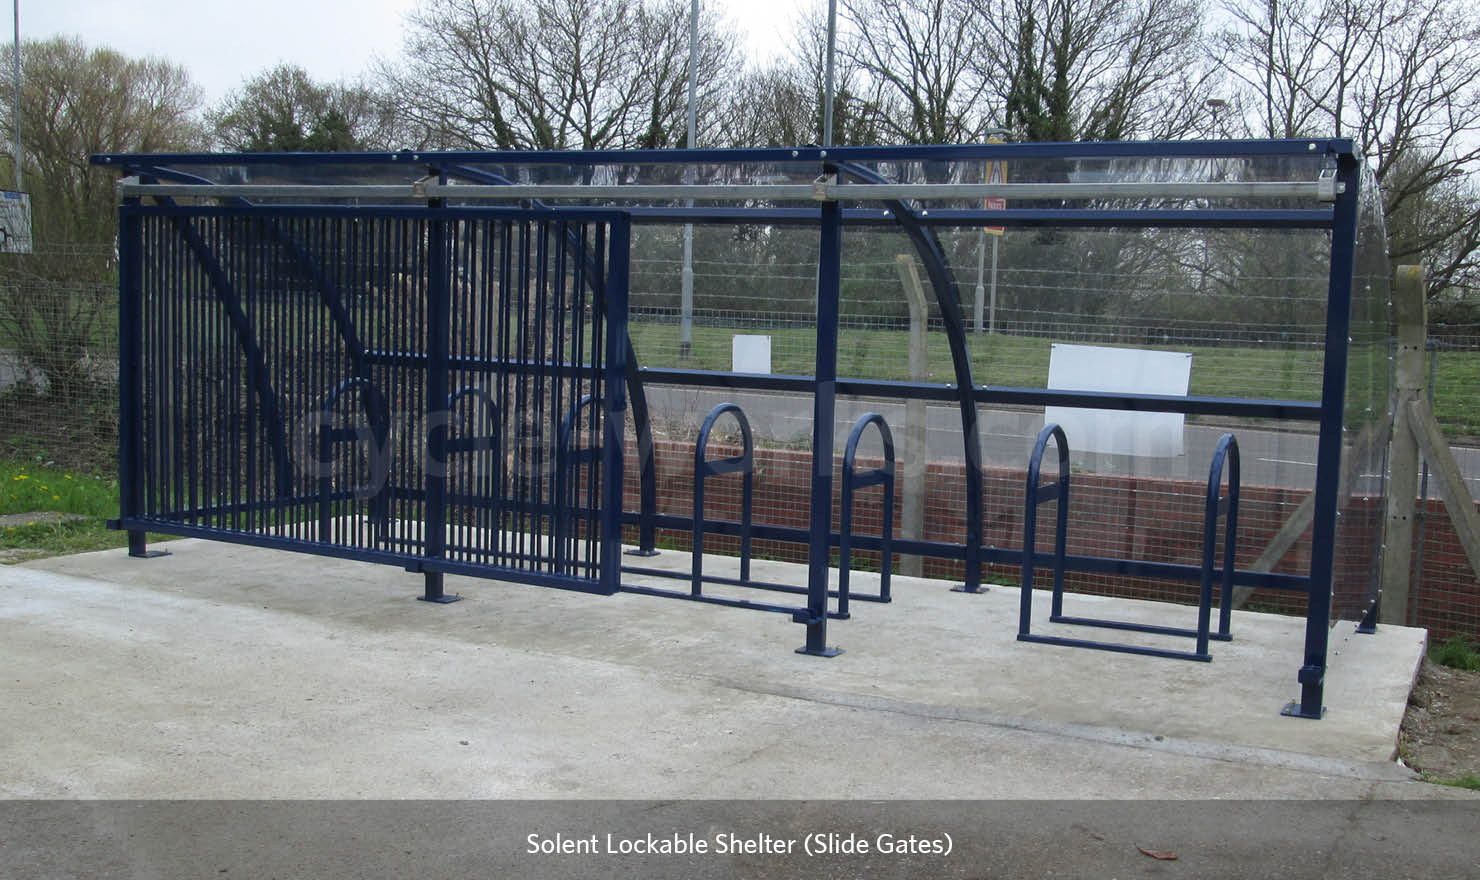 Outside Cycle Shelter with lockable gates